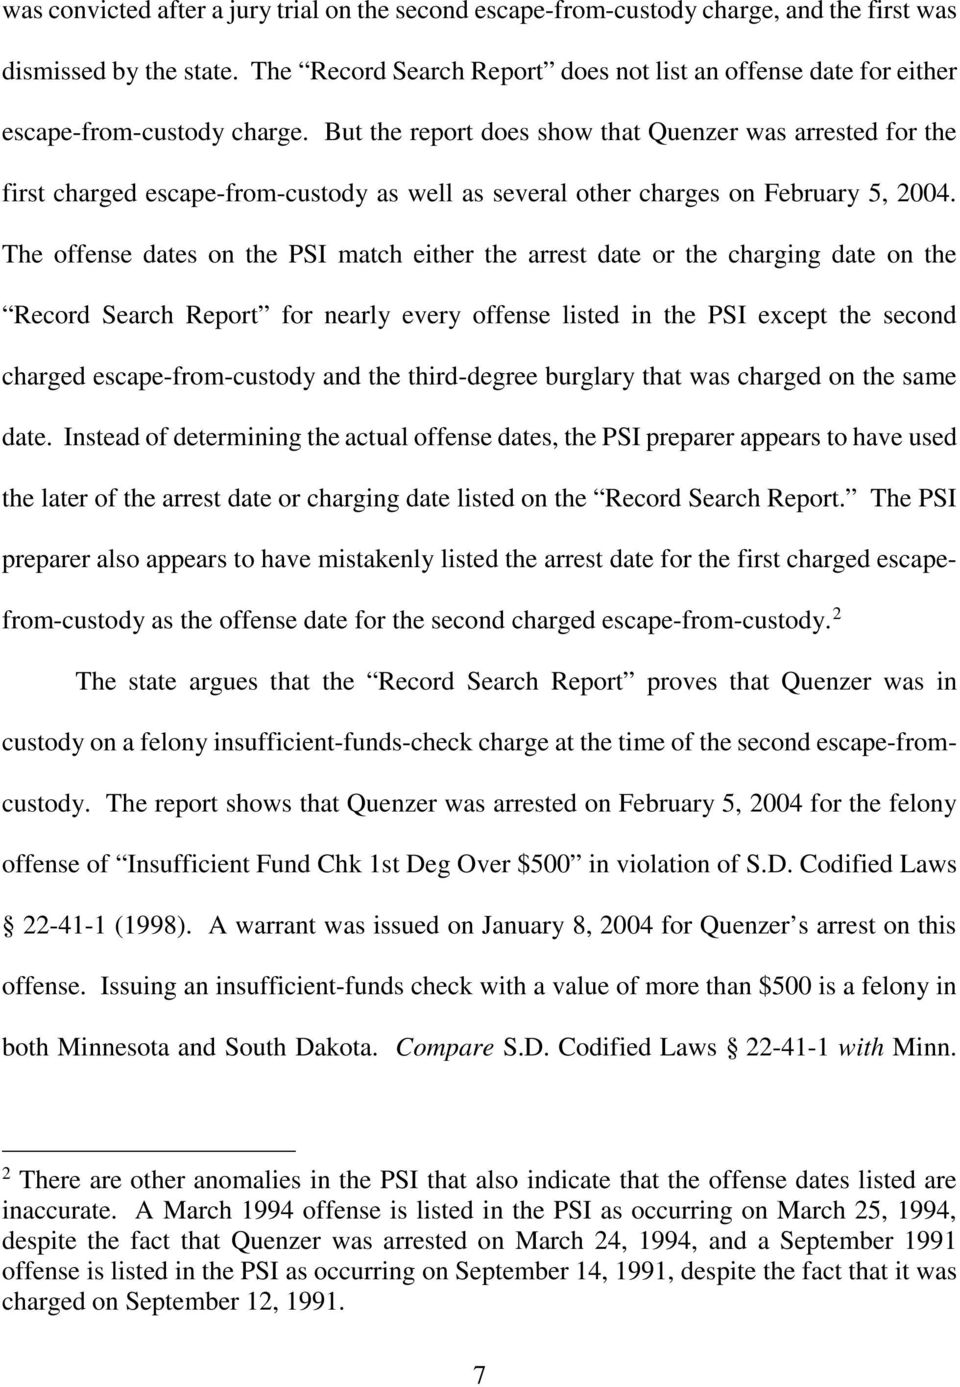 But the report does show that Quenzer was arrested for the first charged escape-from-custody as well as several other charges on February 5, 2004.